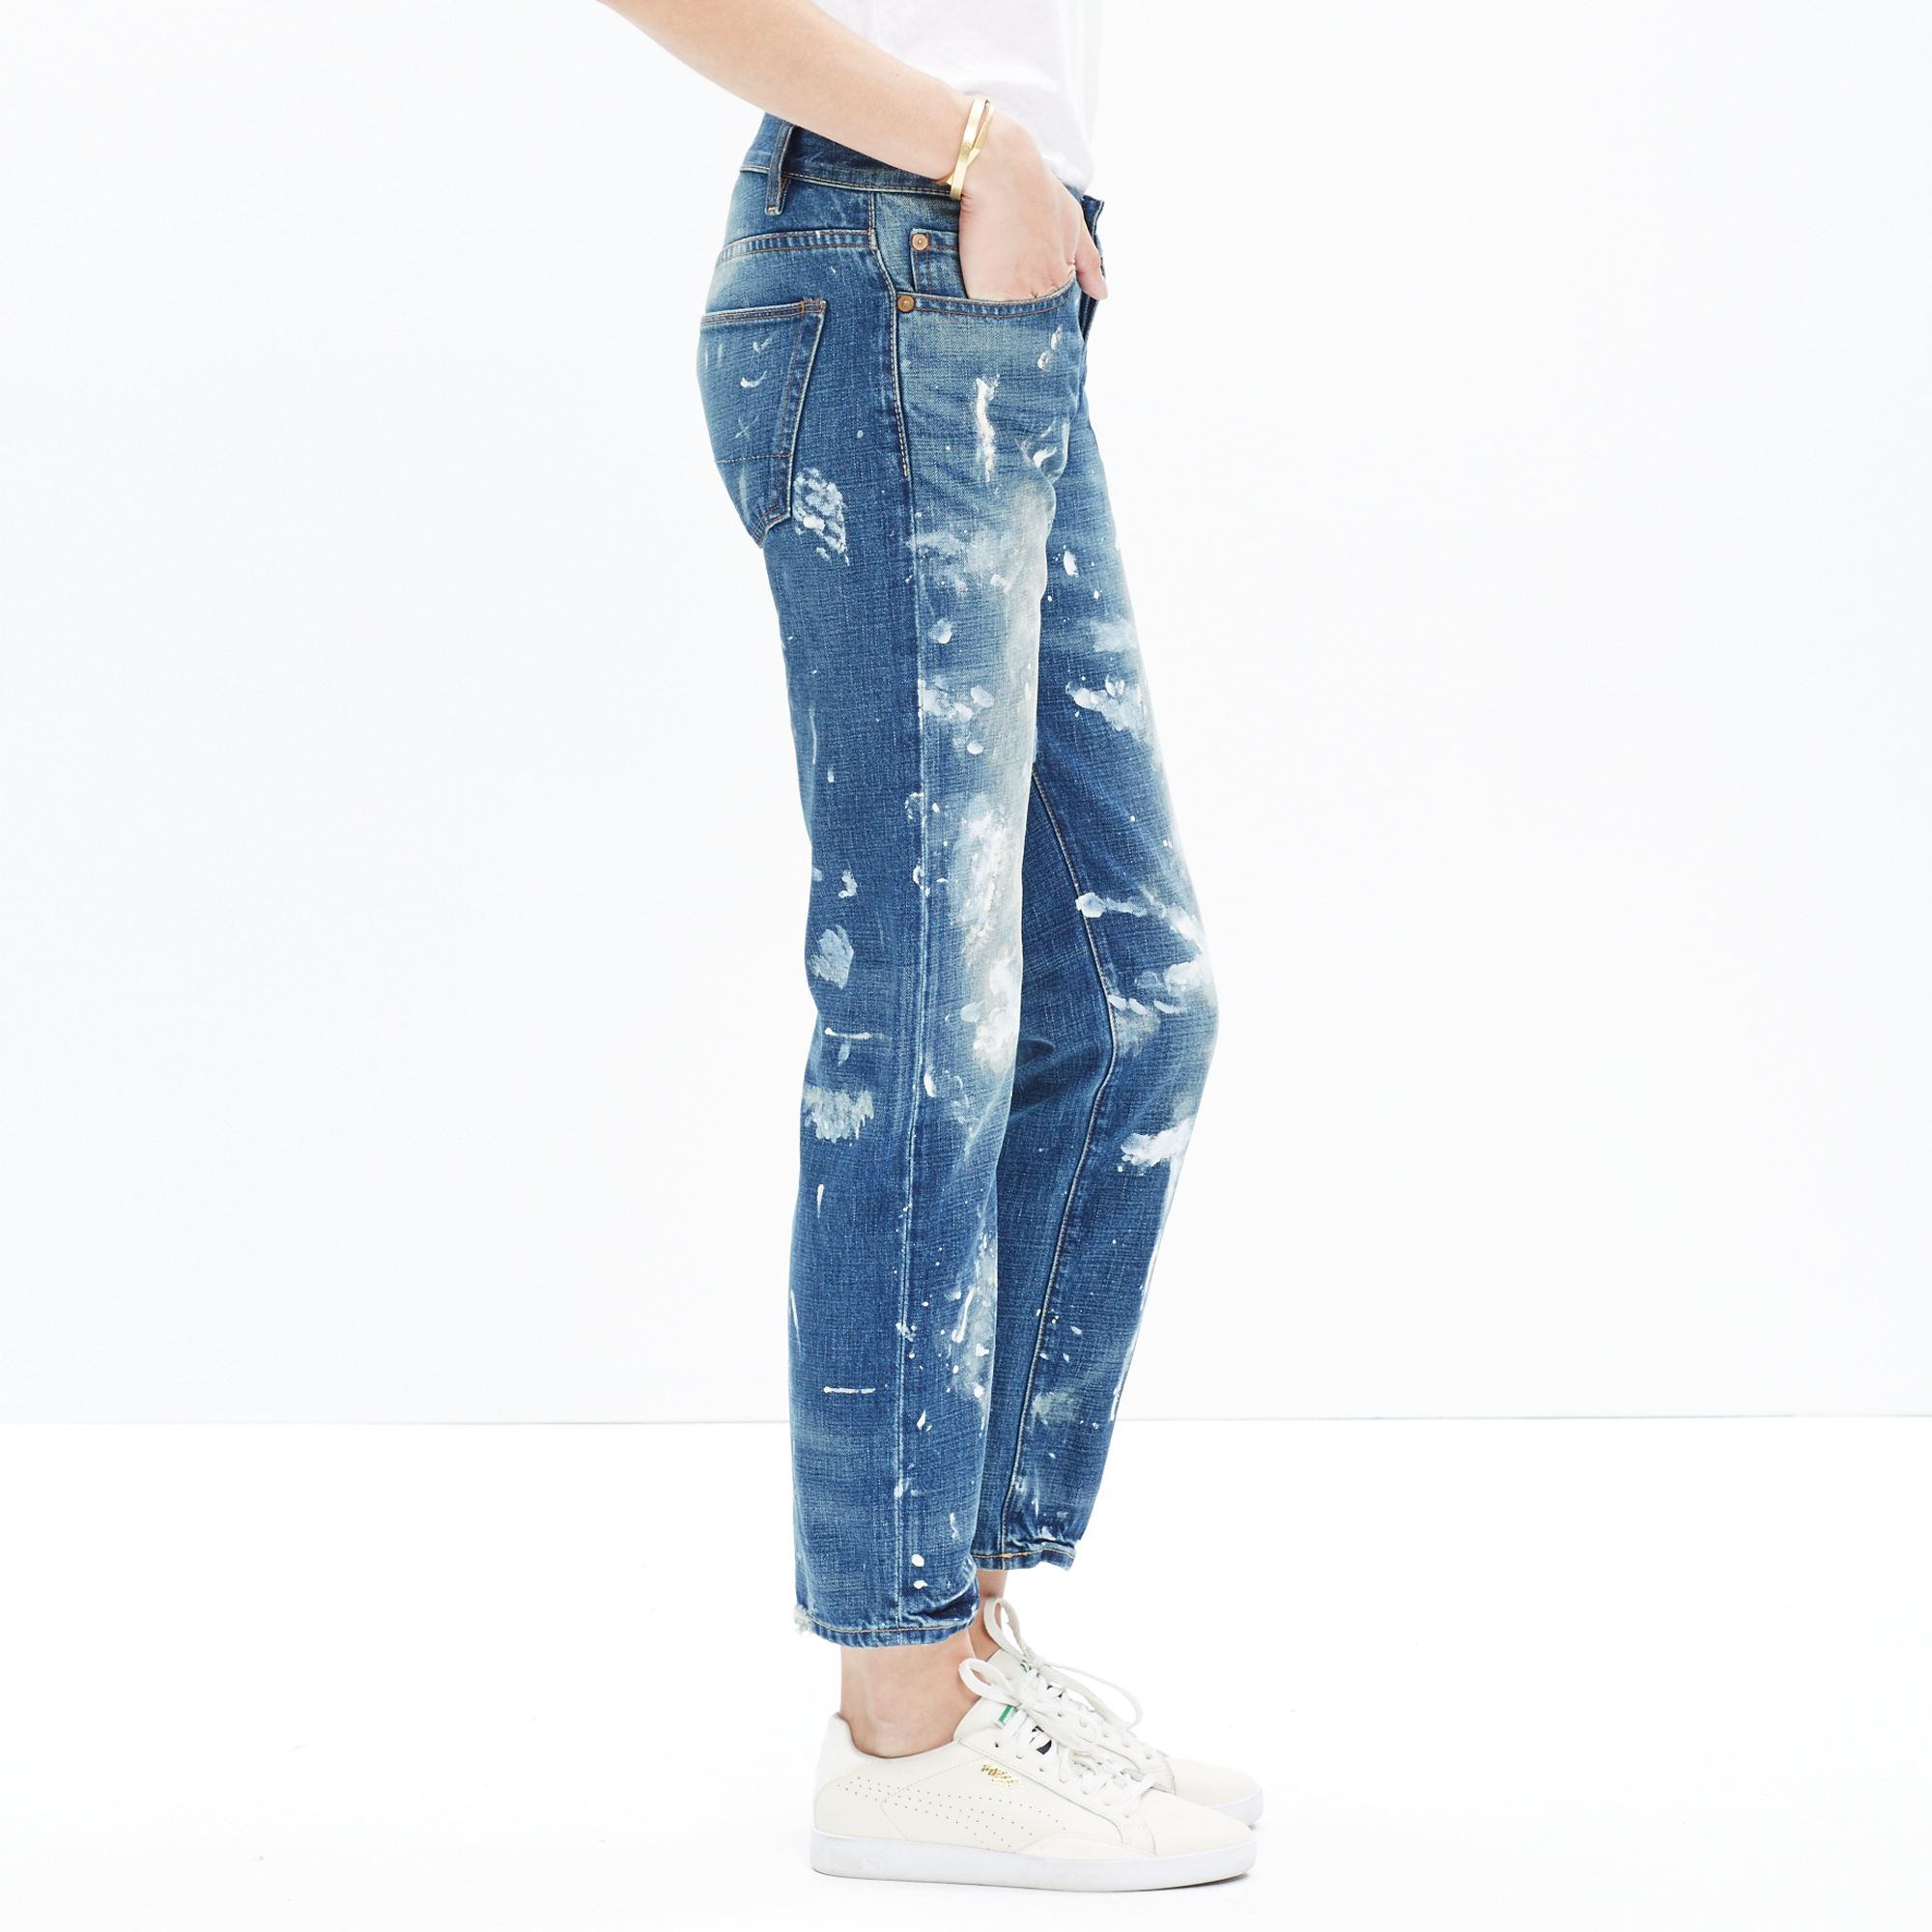 Lyst madewell nsf painted beck jeans in blue - Mobel maxx friedberg ...